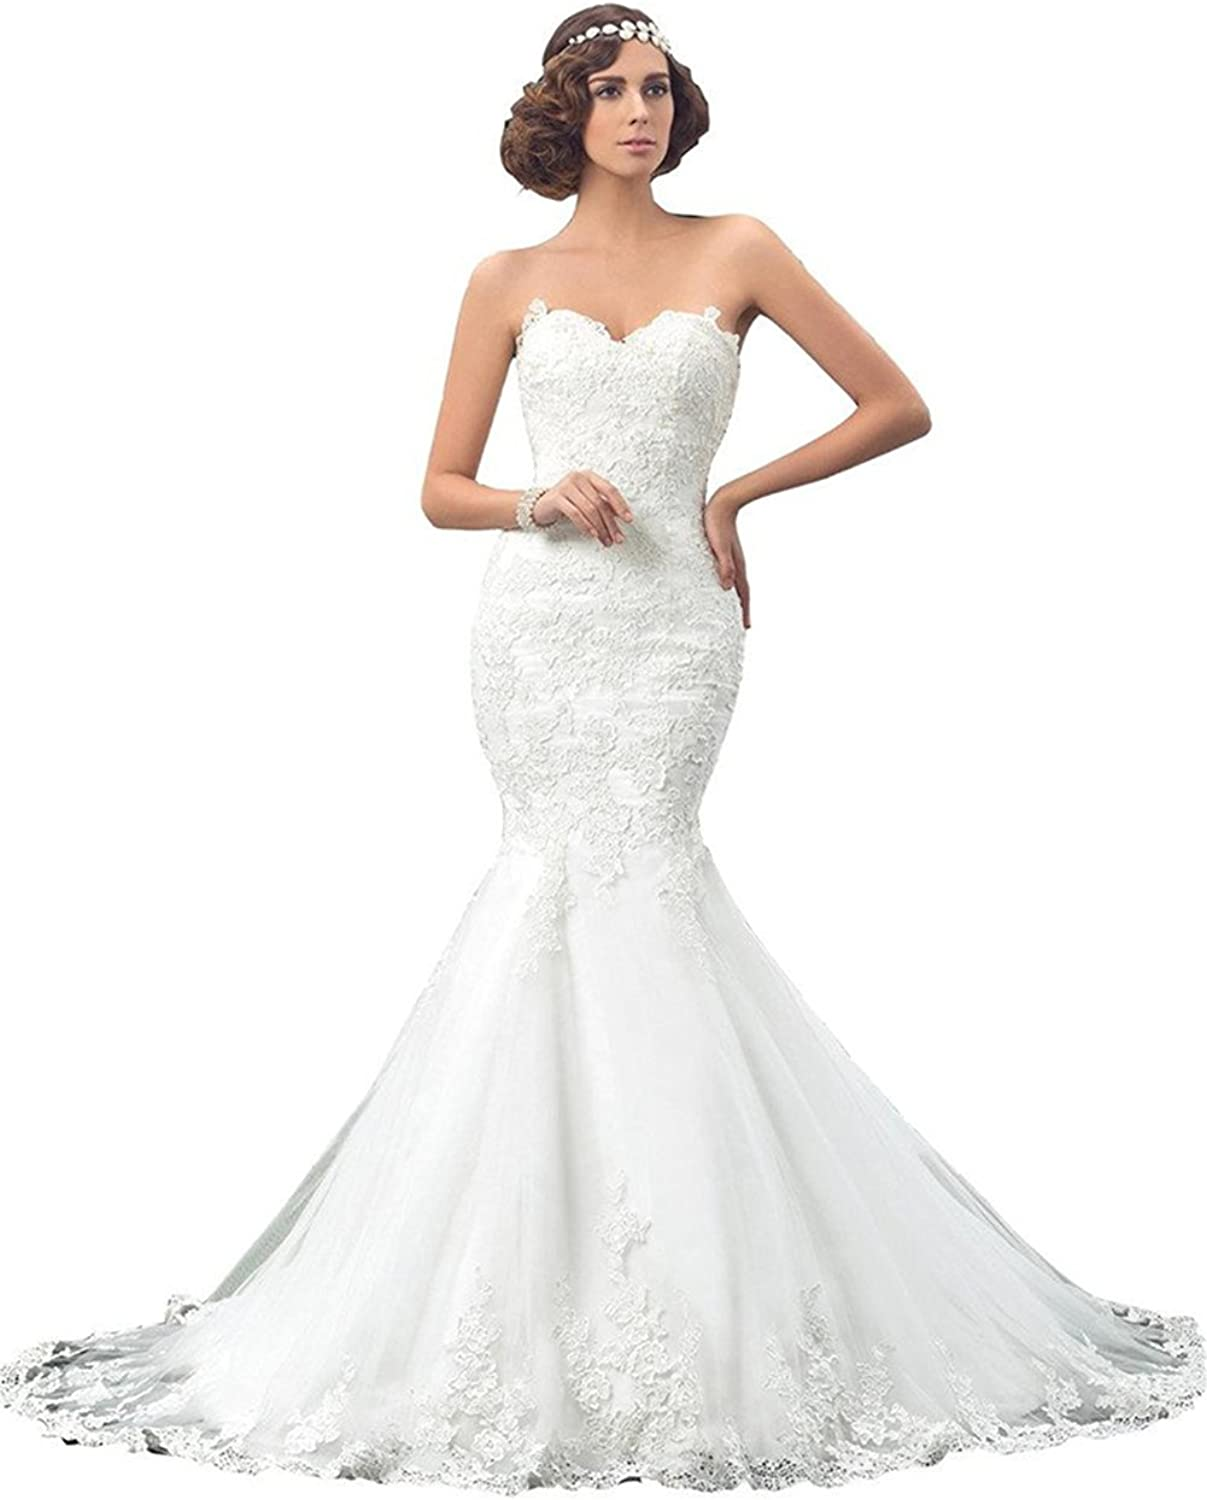 Annxpink Women's Beaded Appliques Sweetheart Tulle Long Mermaid Wedding Dress Bridal Gown